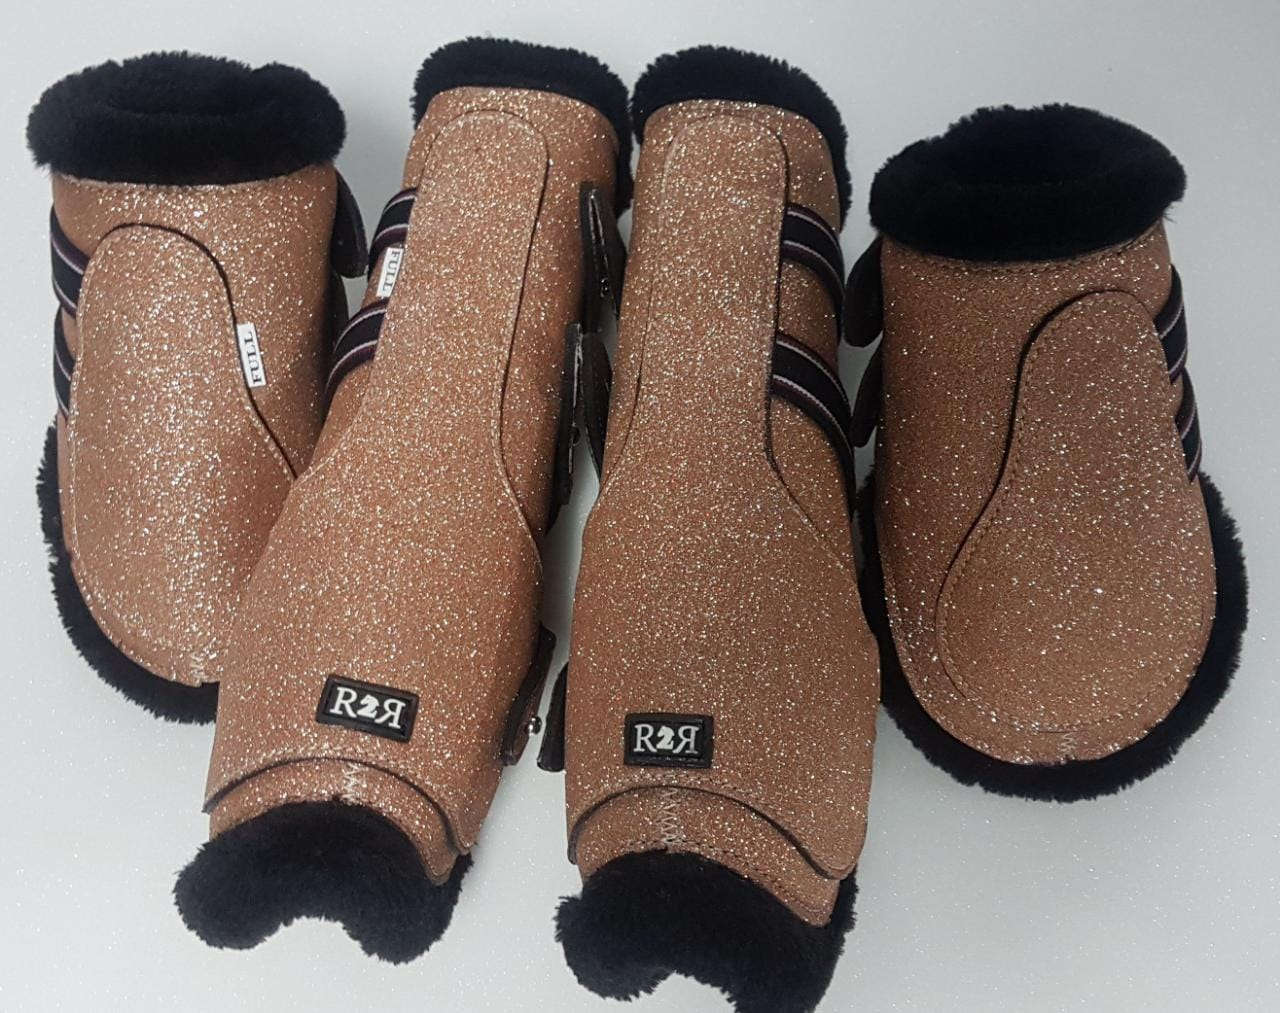 afc8cdd471 Saddle Pad Set with Jump Boots Set SULTAN GOLD GLITTER – Ready To ...